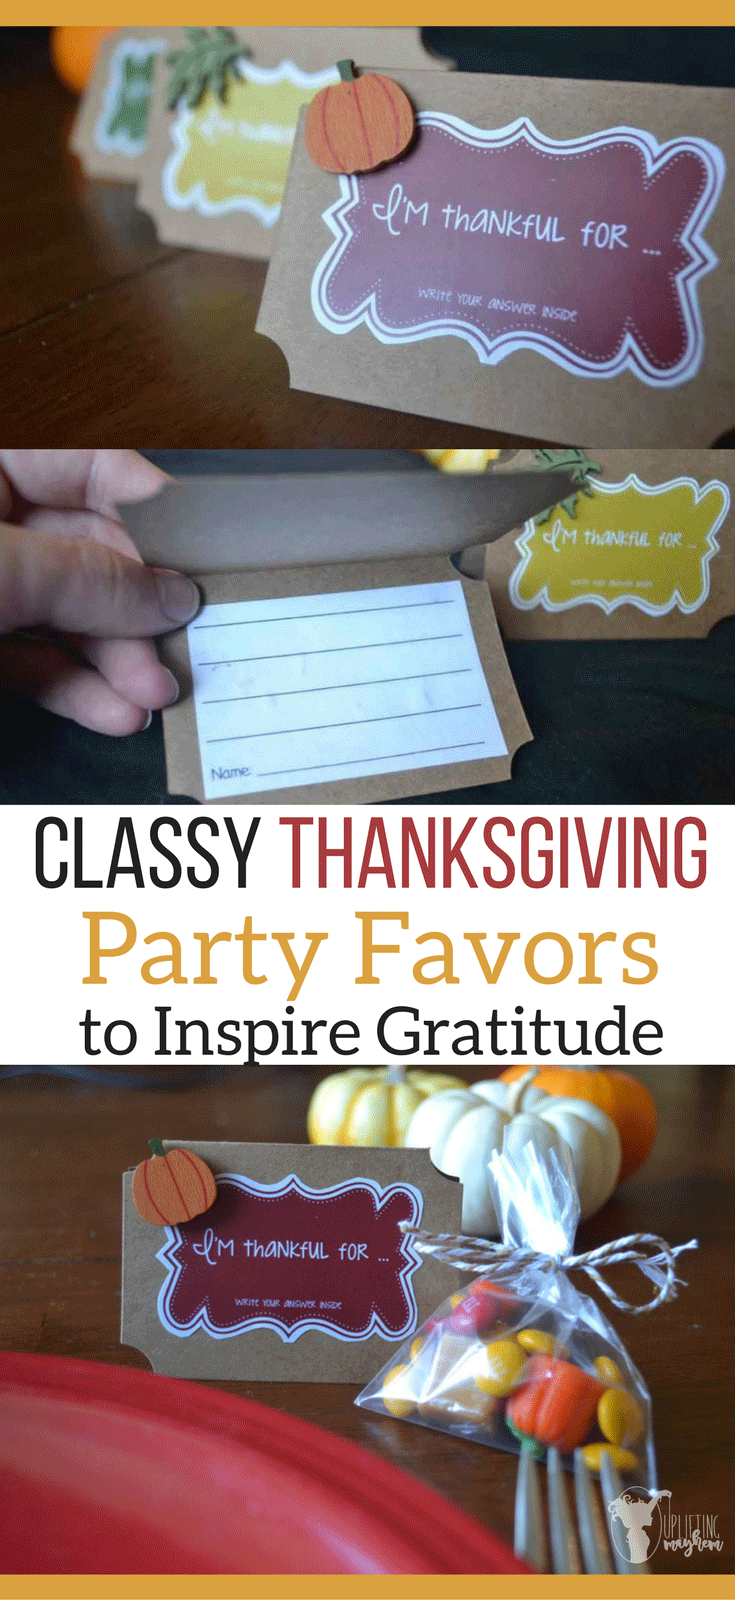 Thanksgiving Party Favors to Inspire Gratitude